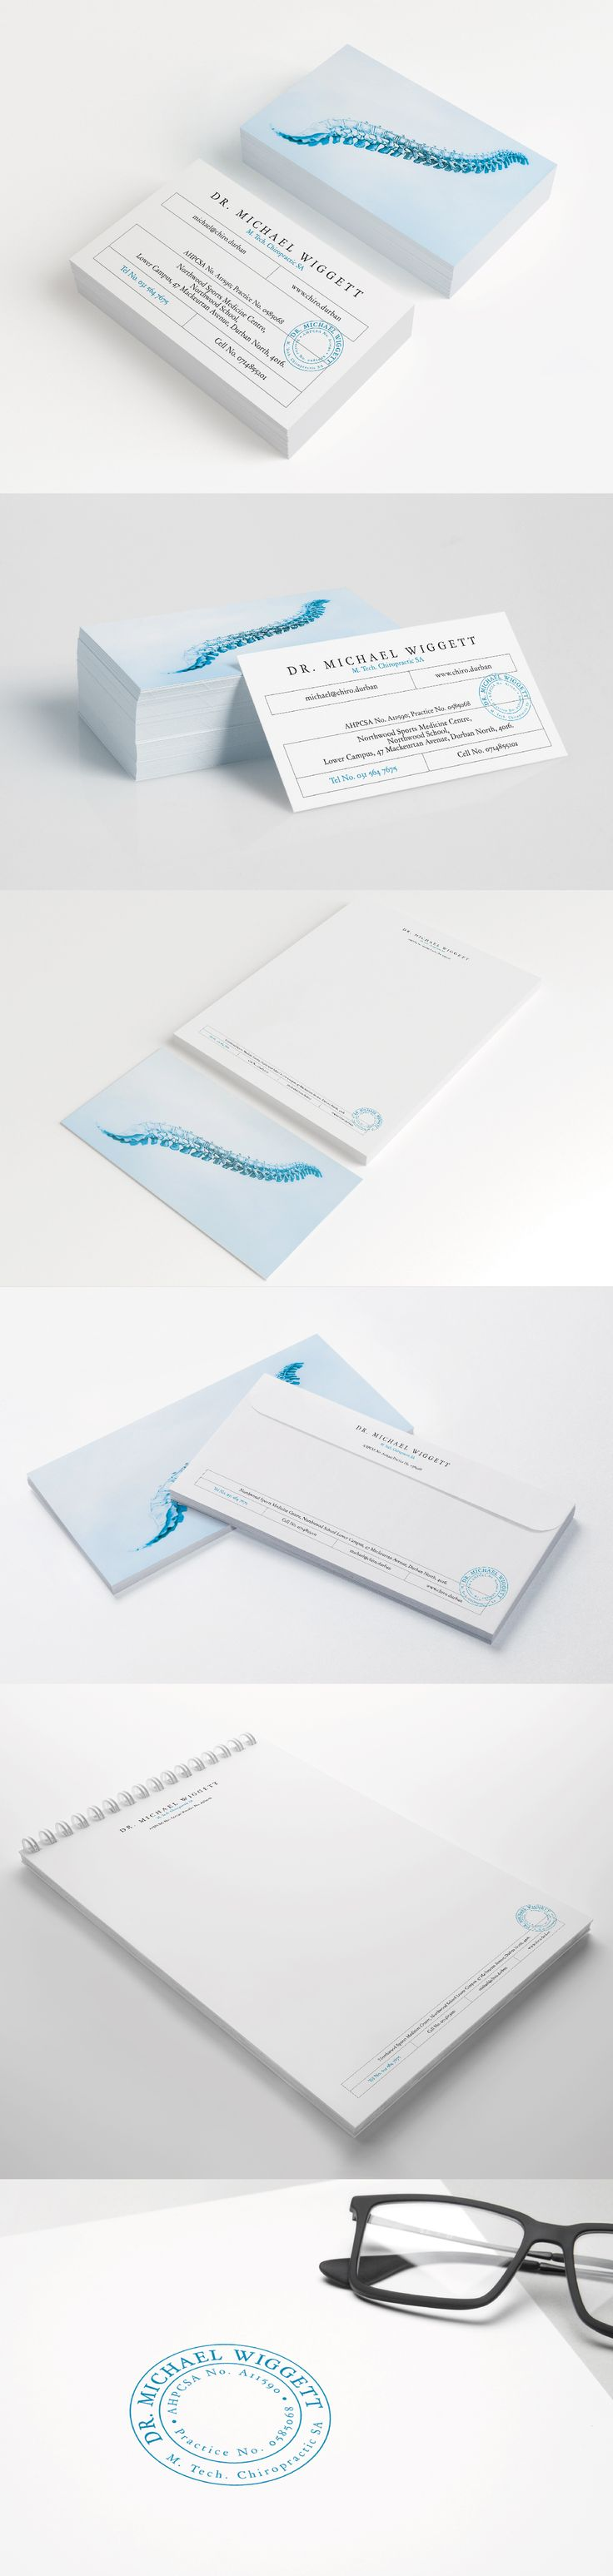 Michael Wiggett's Corporate Stationary, business cards, letterheads, envelopes, stamp and prescription pad.